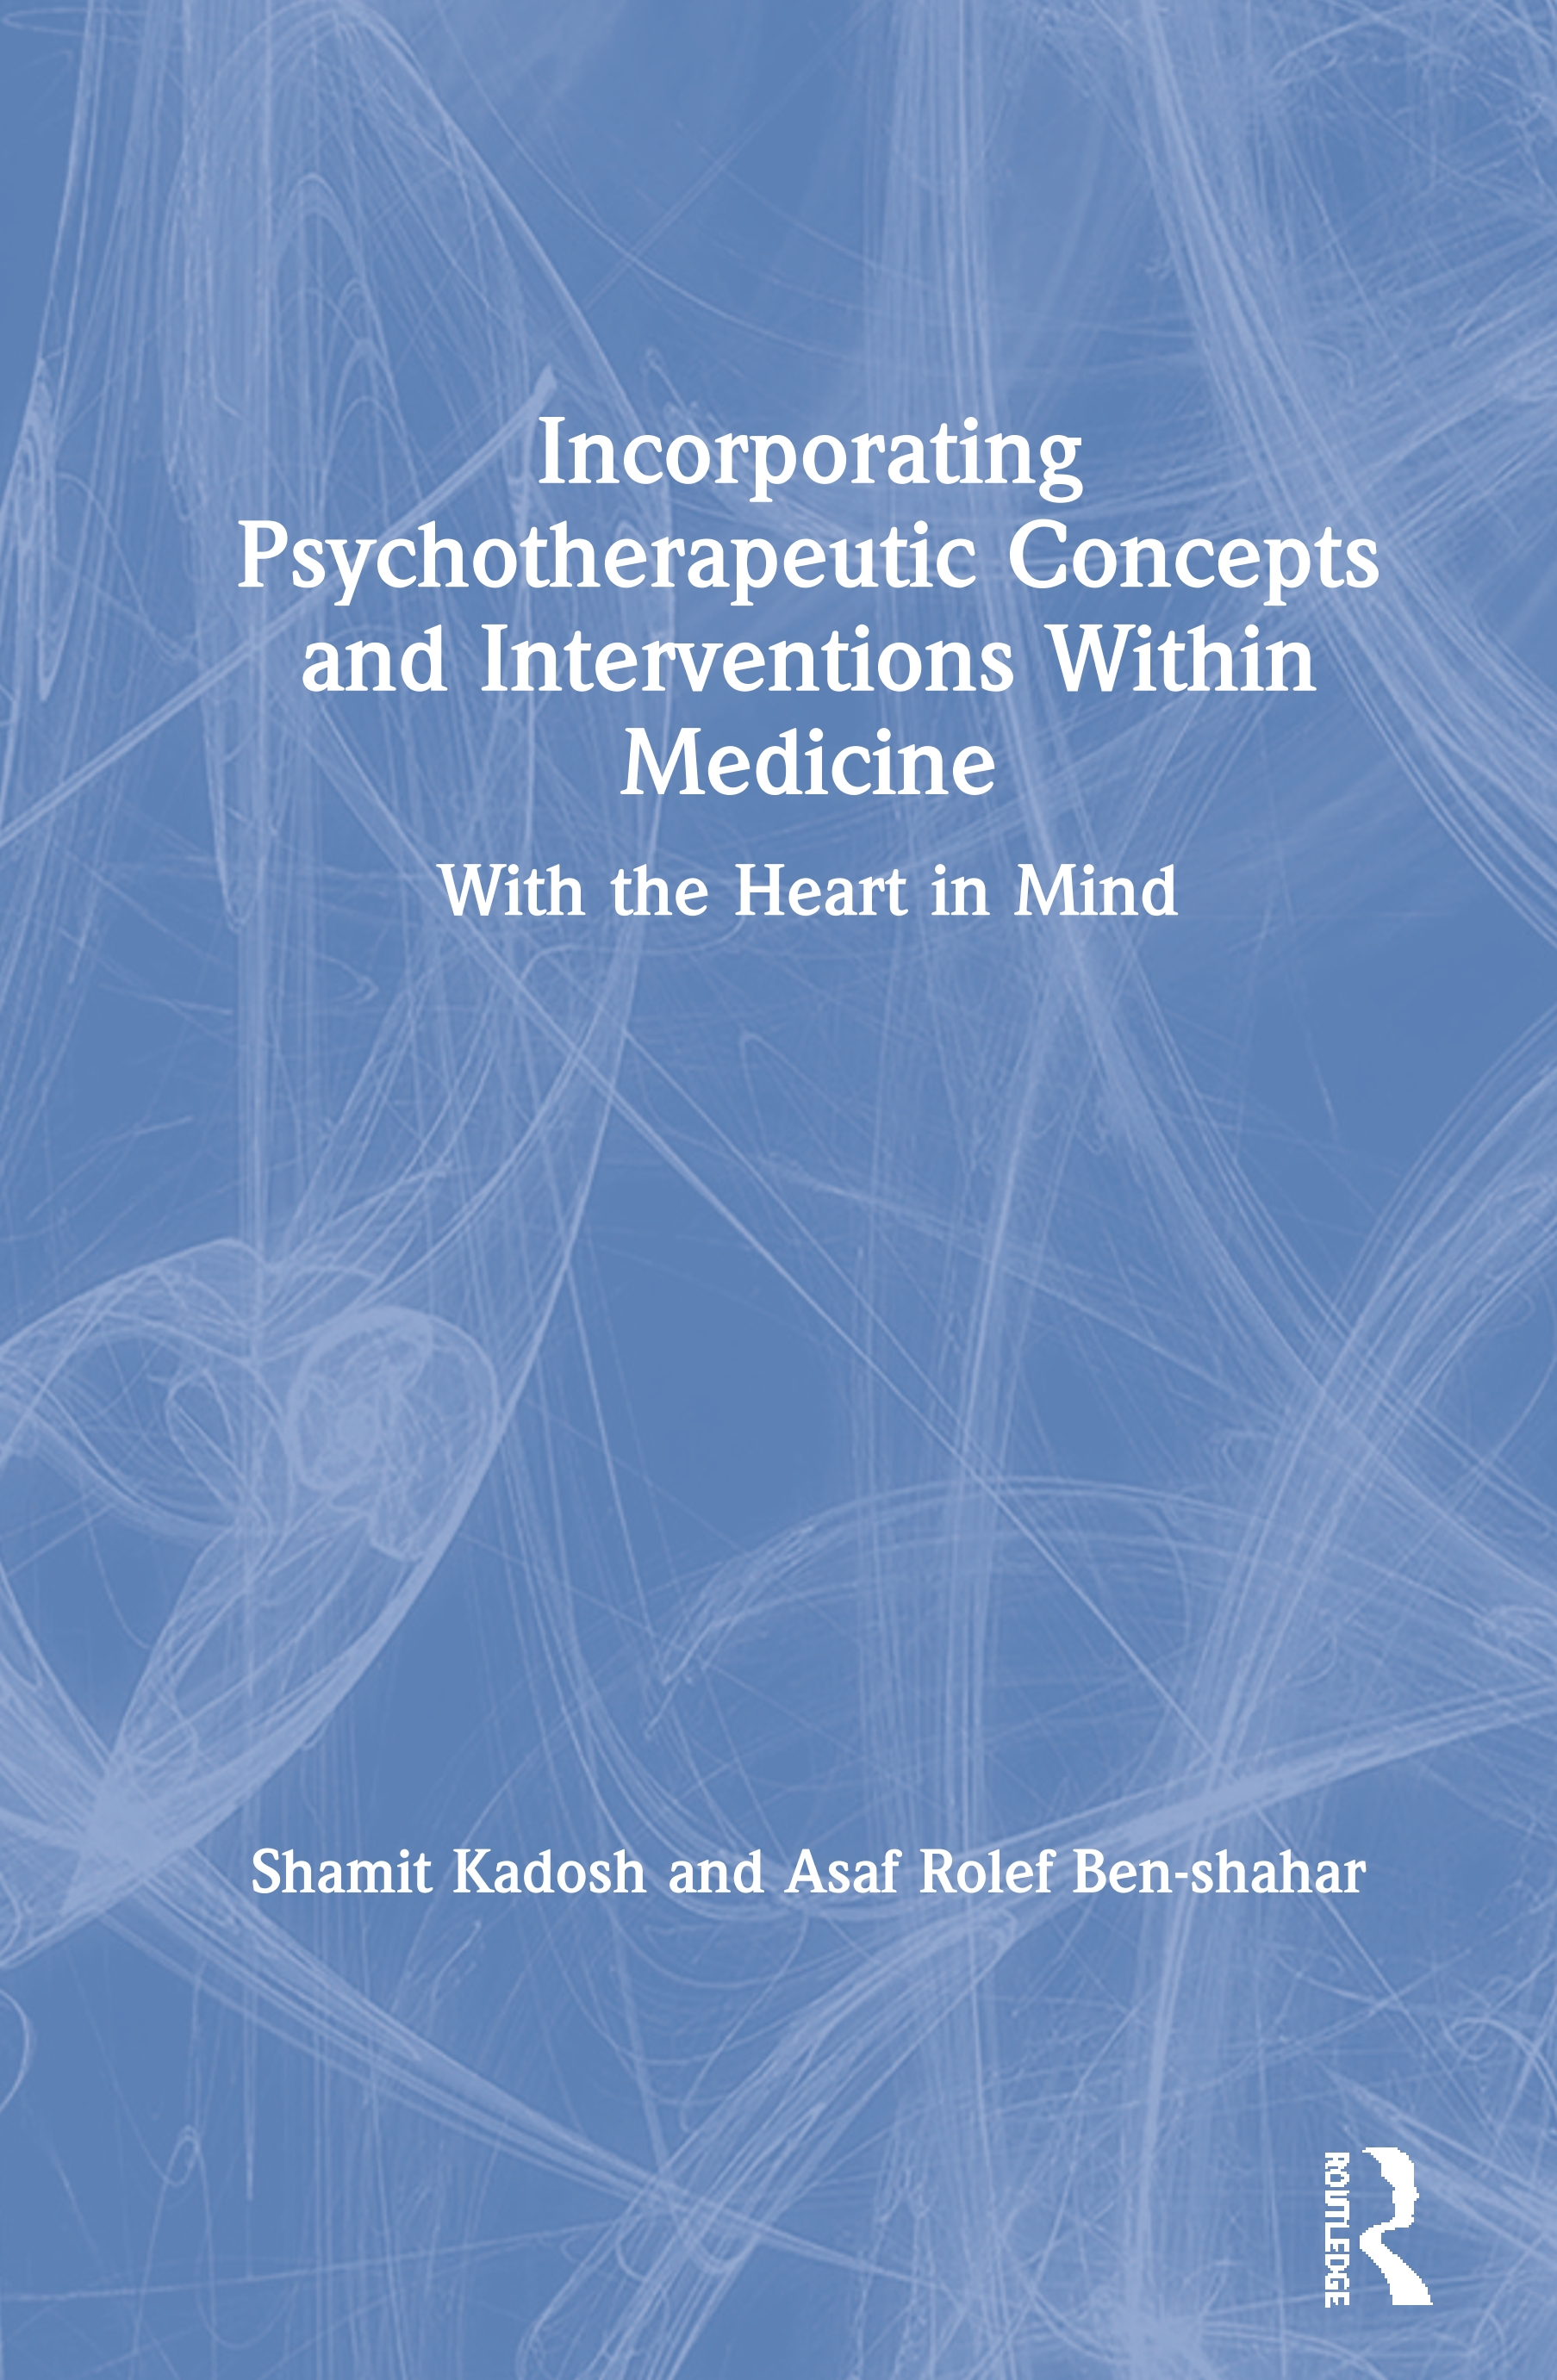 Incorporating Psychotherapeutic Concepts and Interventions Within Medicine: With the Heart in Mind book cover